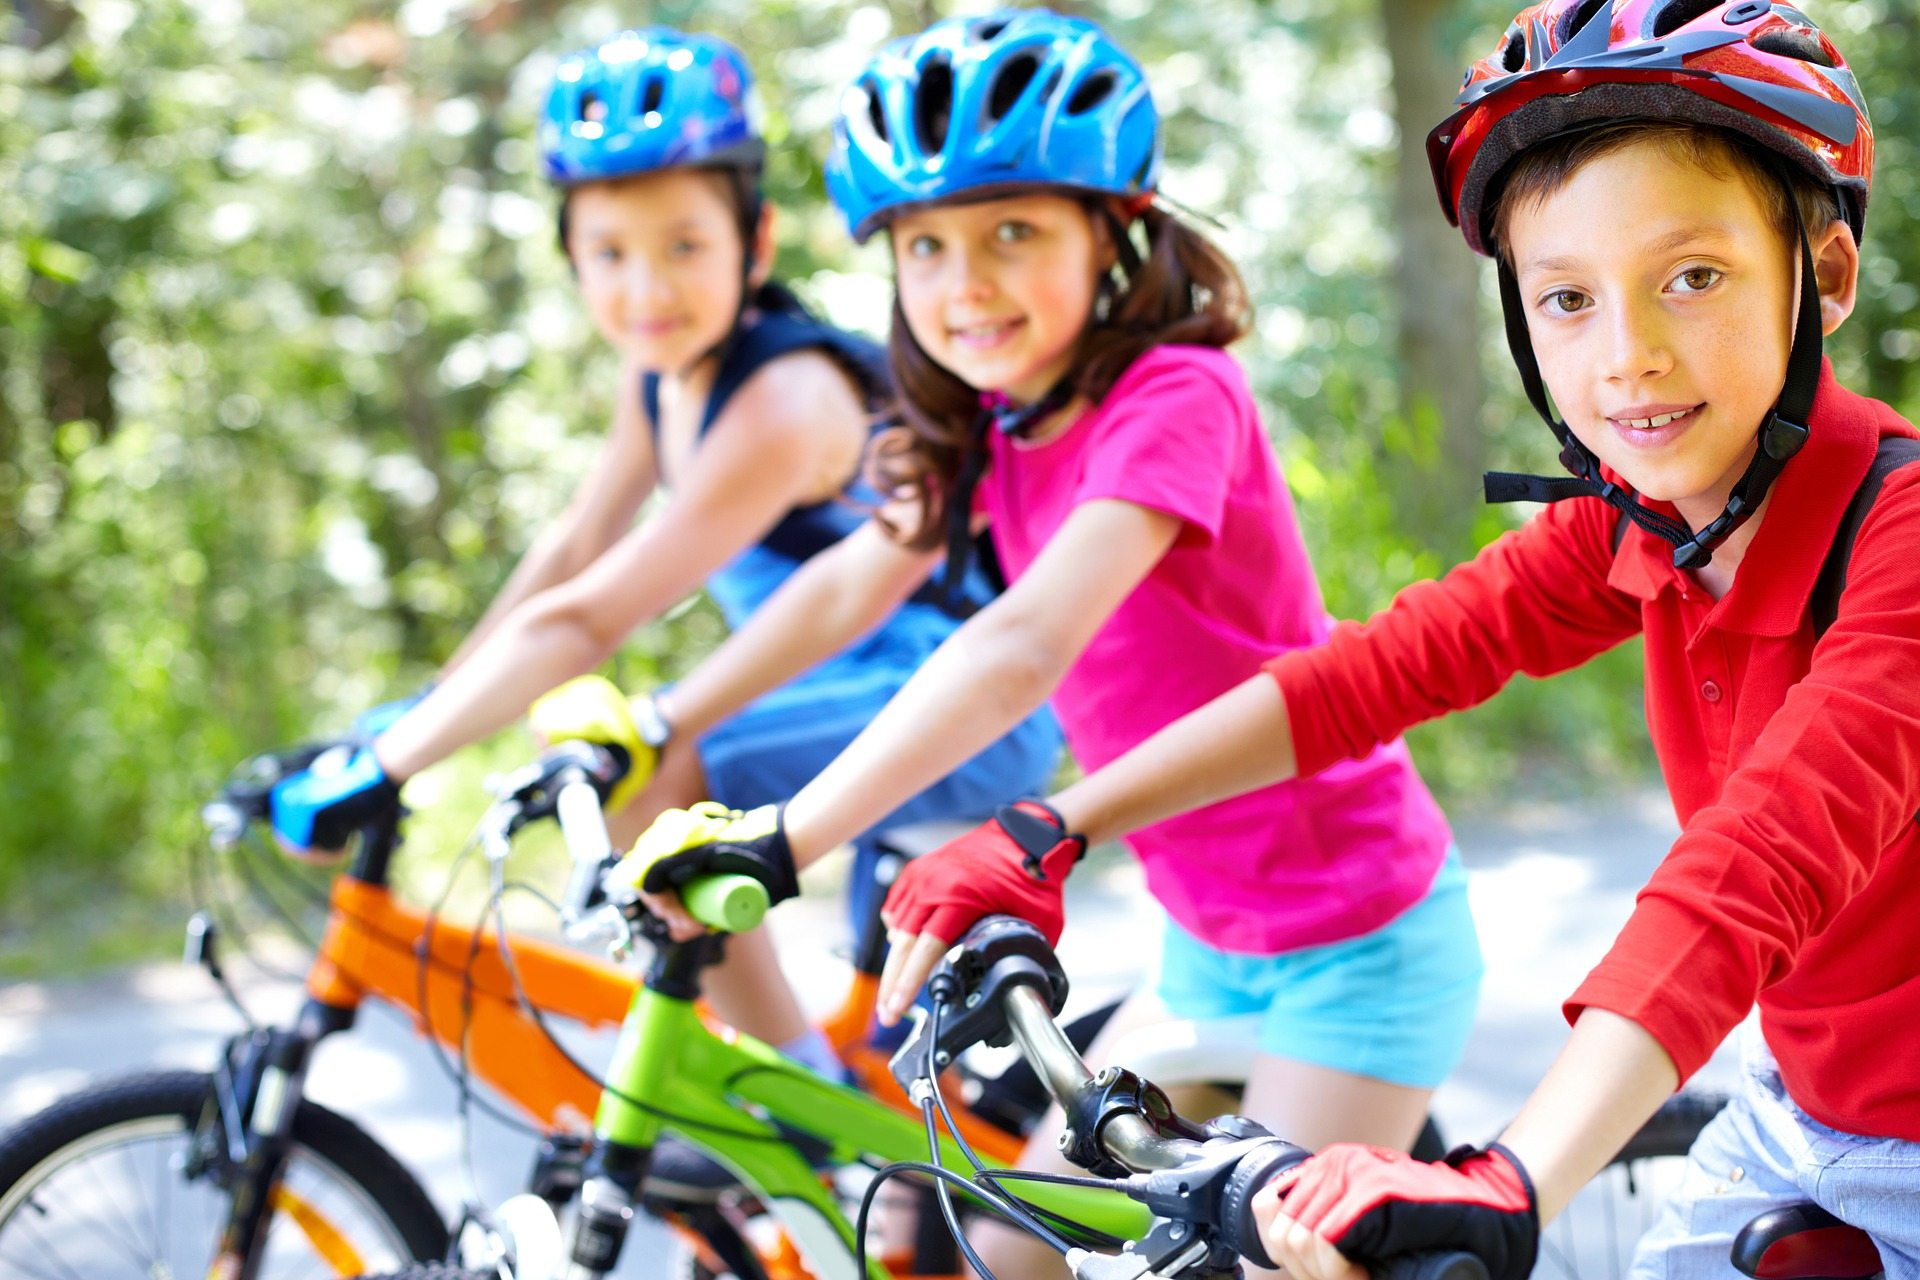 Children and sport: at what age to start and what sport to choose?